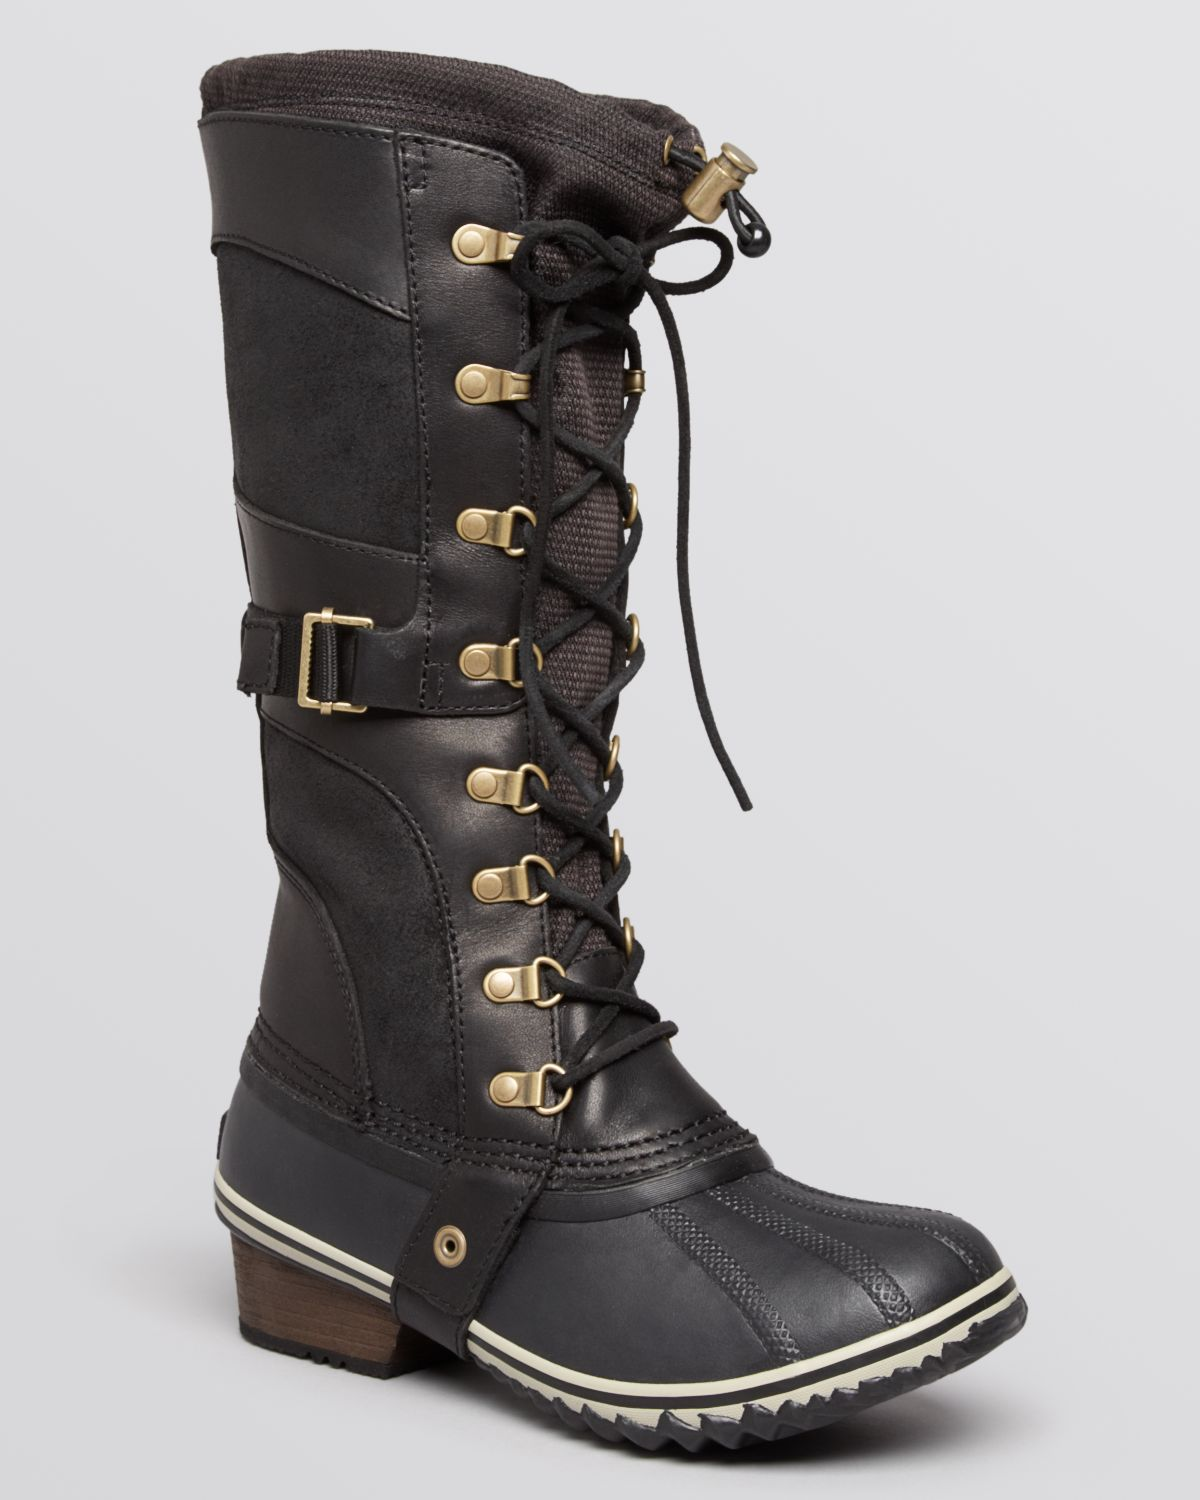 Sorel Conquest Boots On Sale